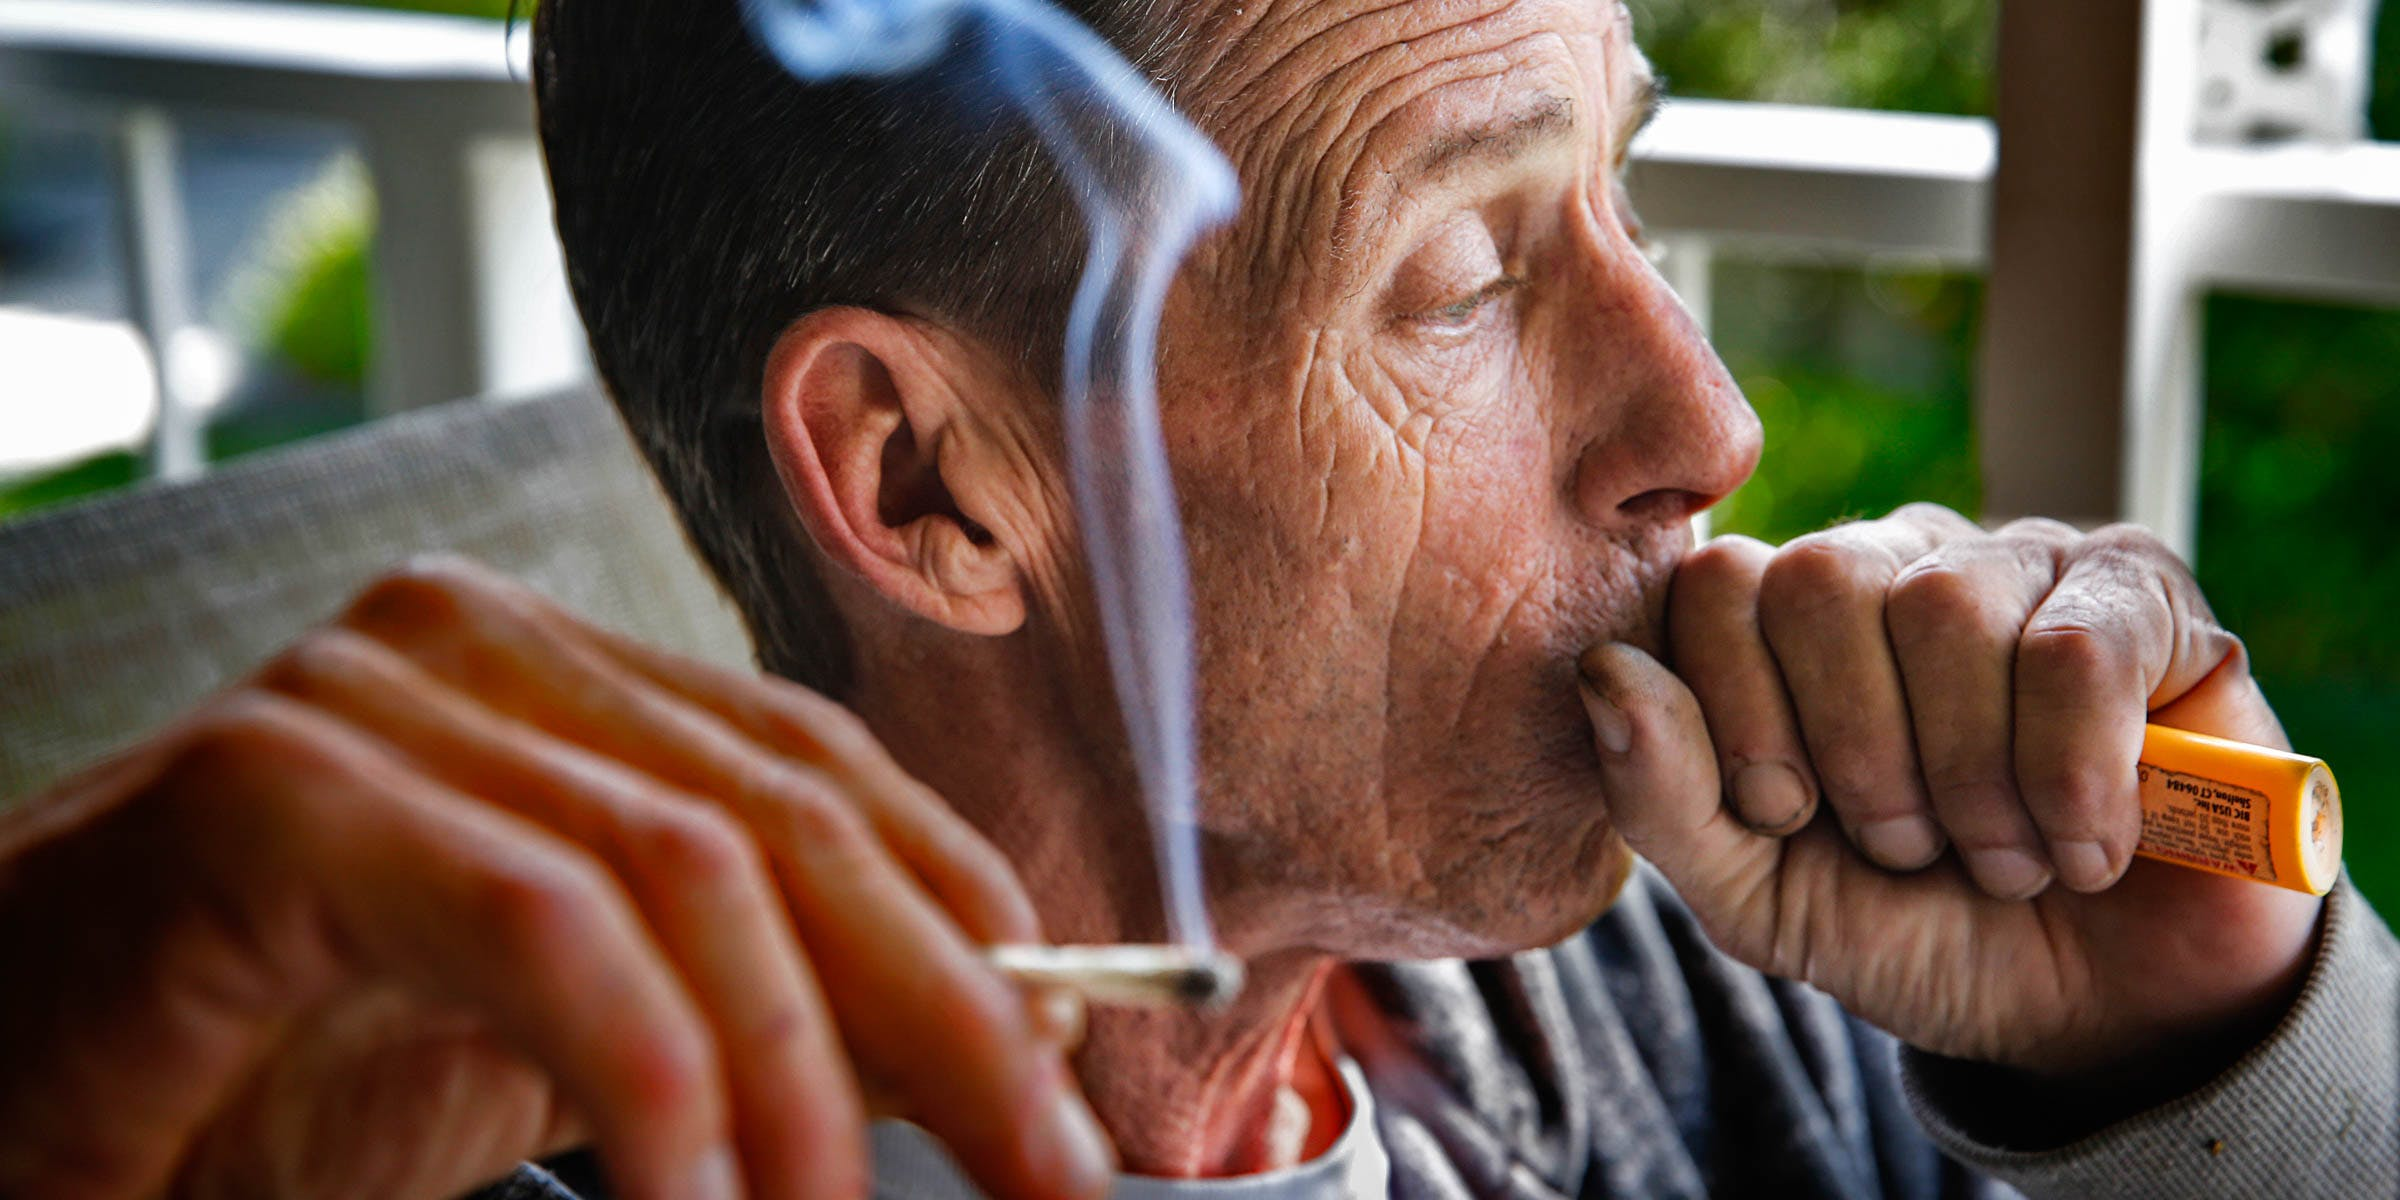 Does the new Right to Try law really allow terminally ill patients to access cannabis